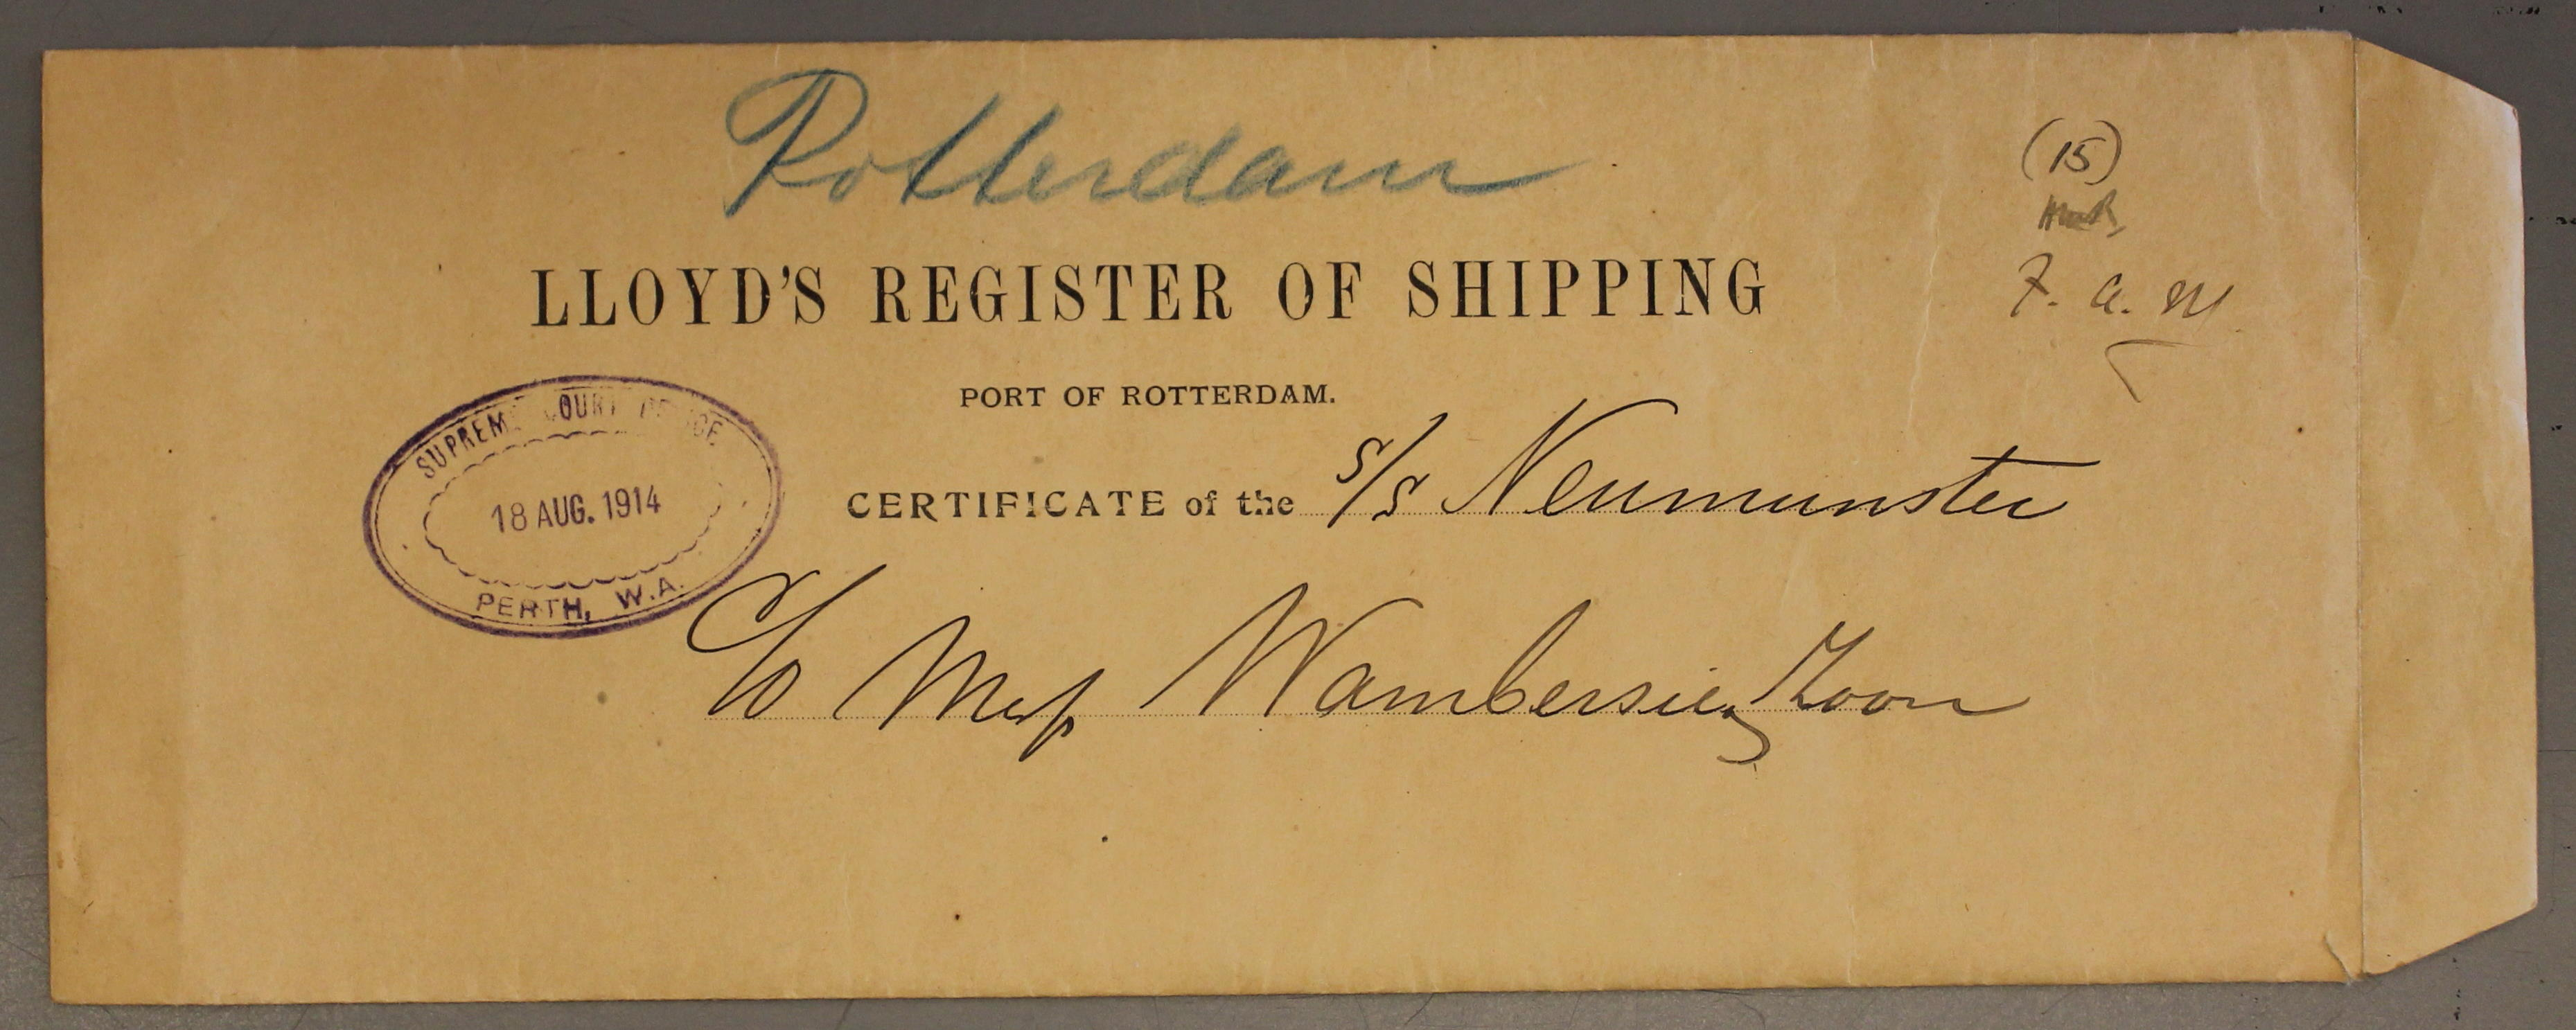 Lloyd's Register of Shipping 1912